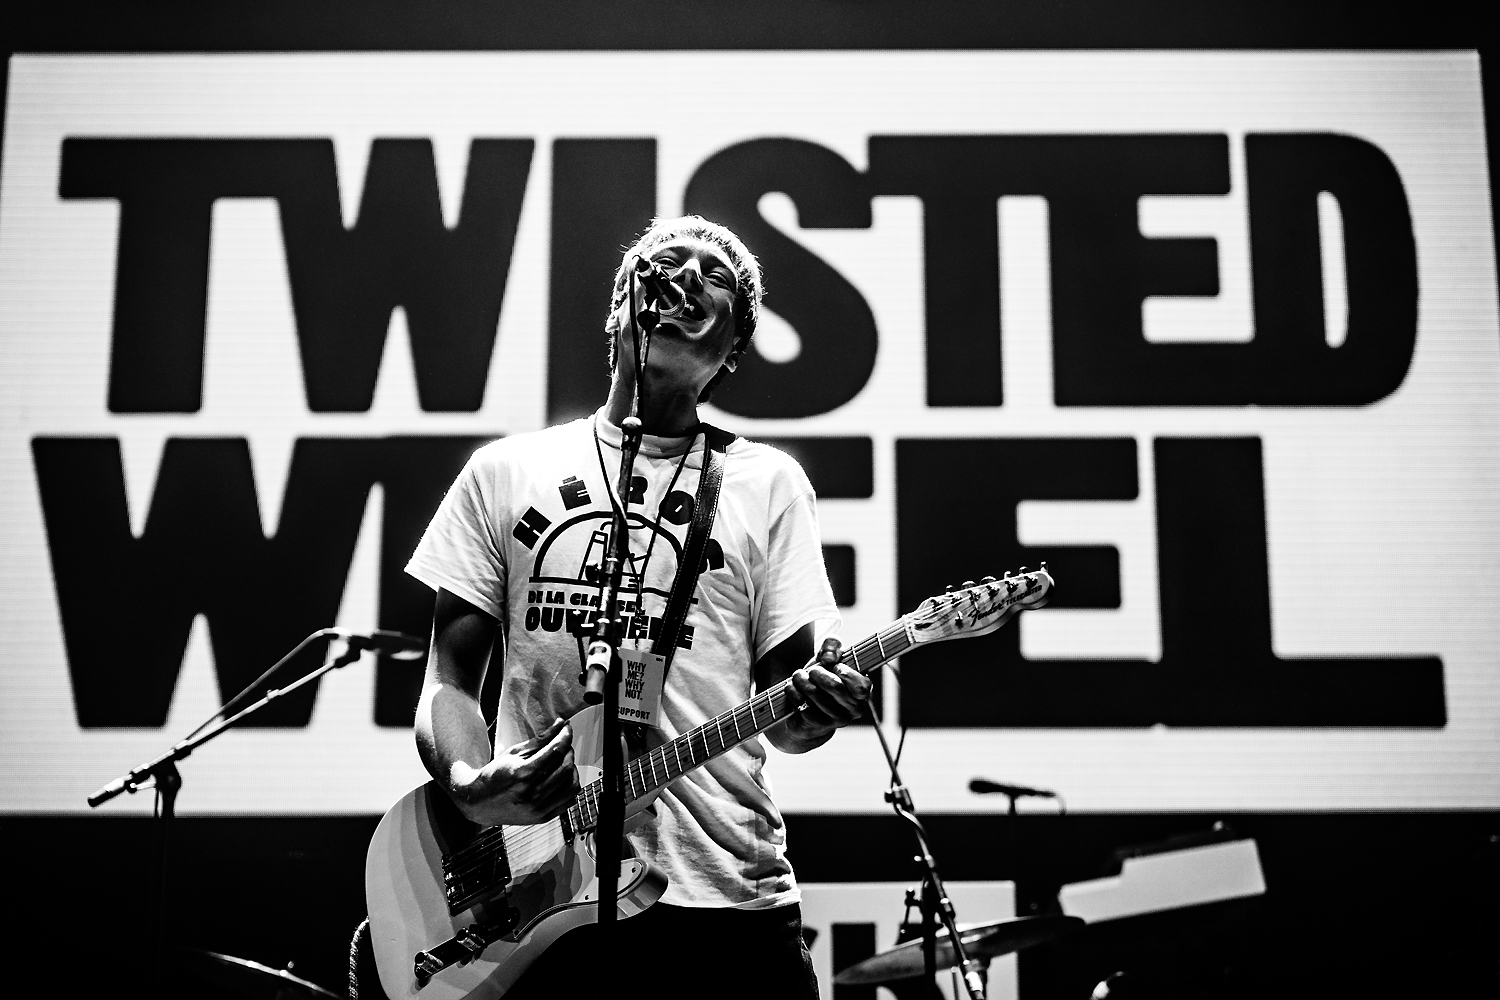 Twisted Wheel @ Vorst Nationaal 2020 (Jan Van den Bulck)